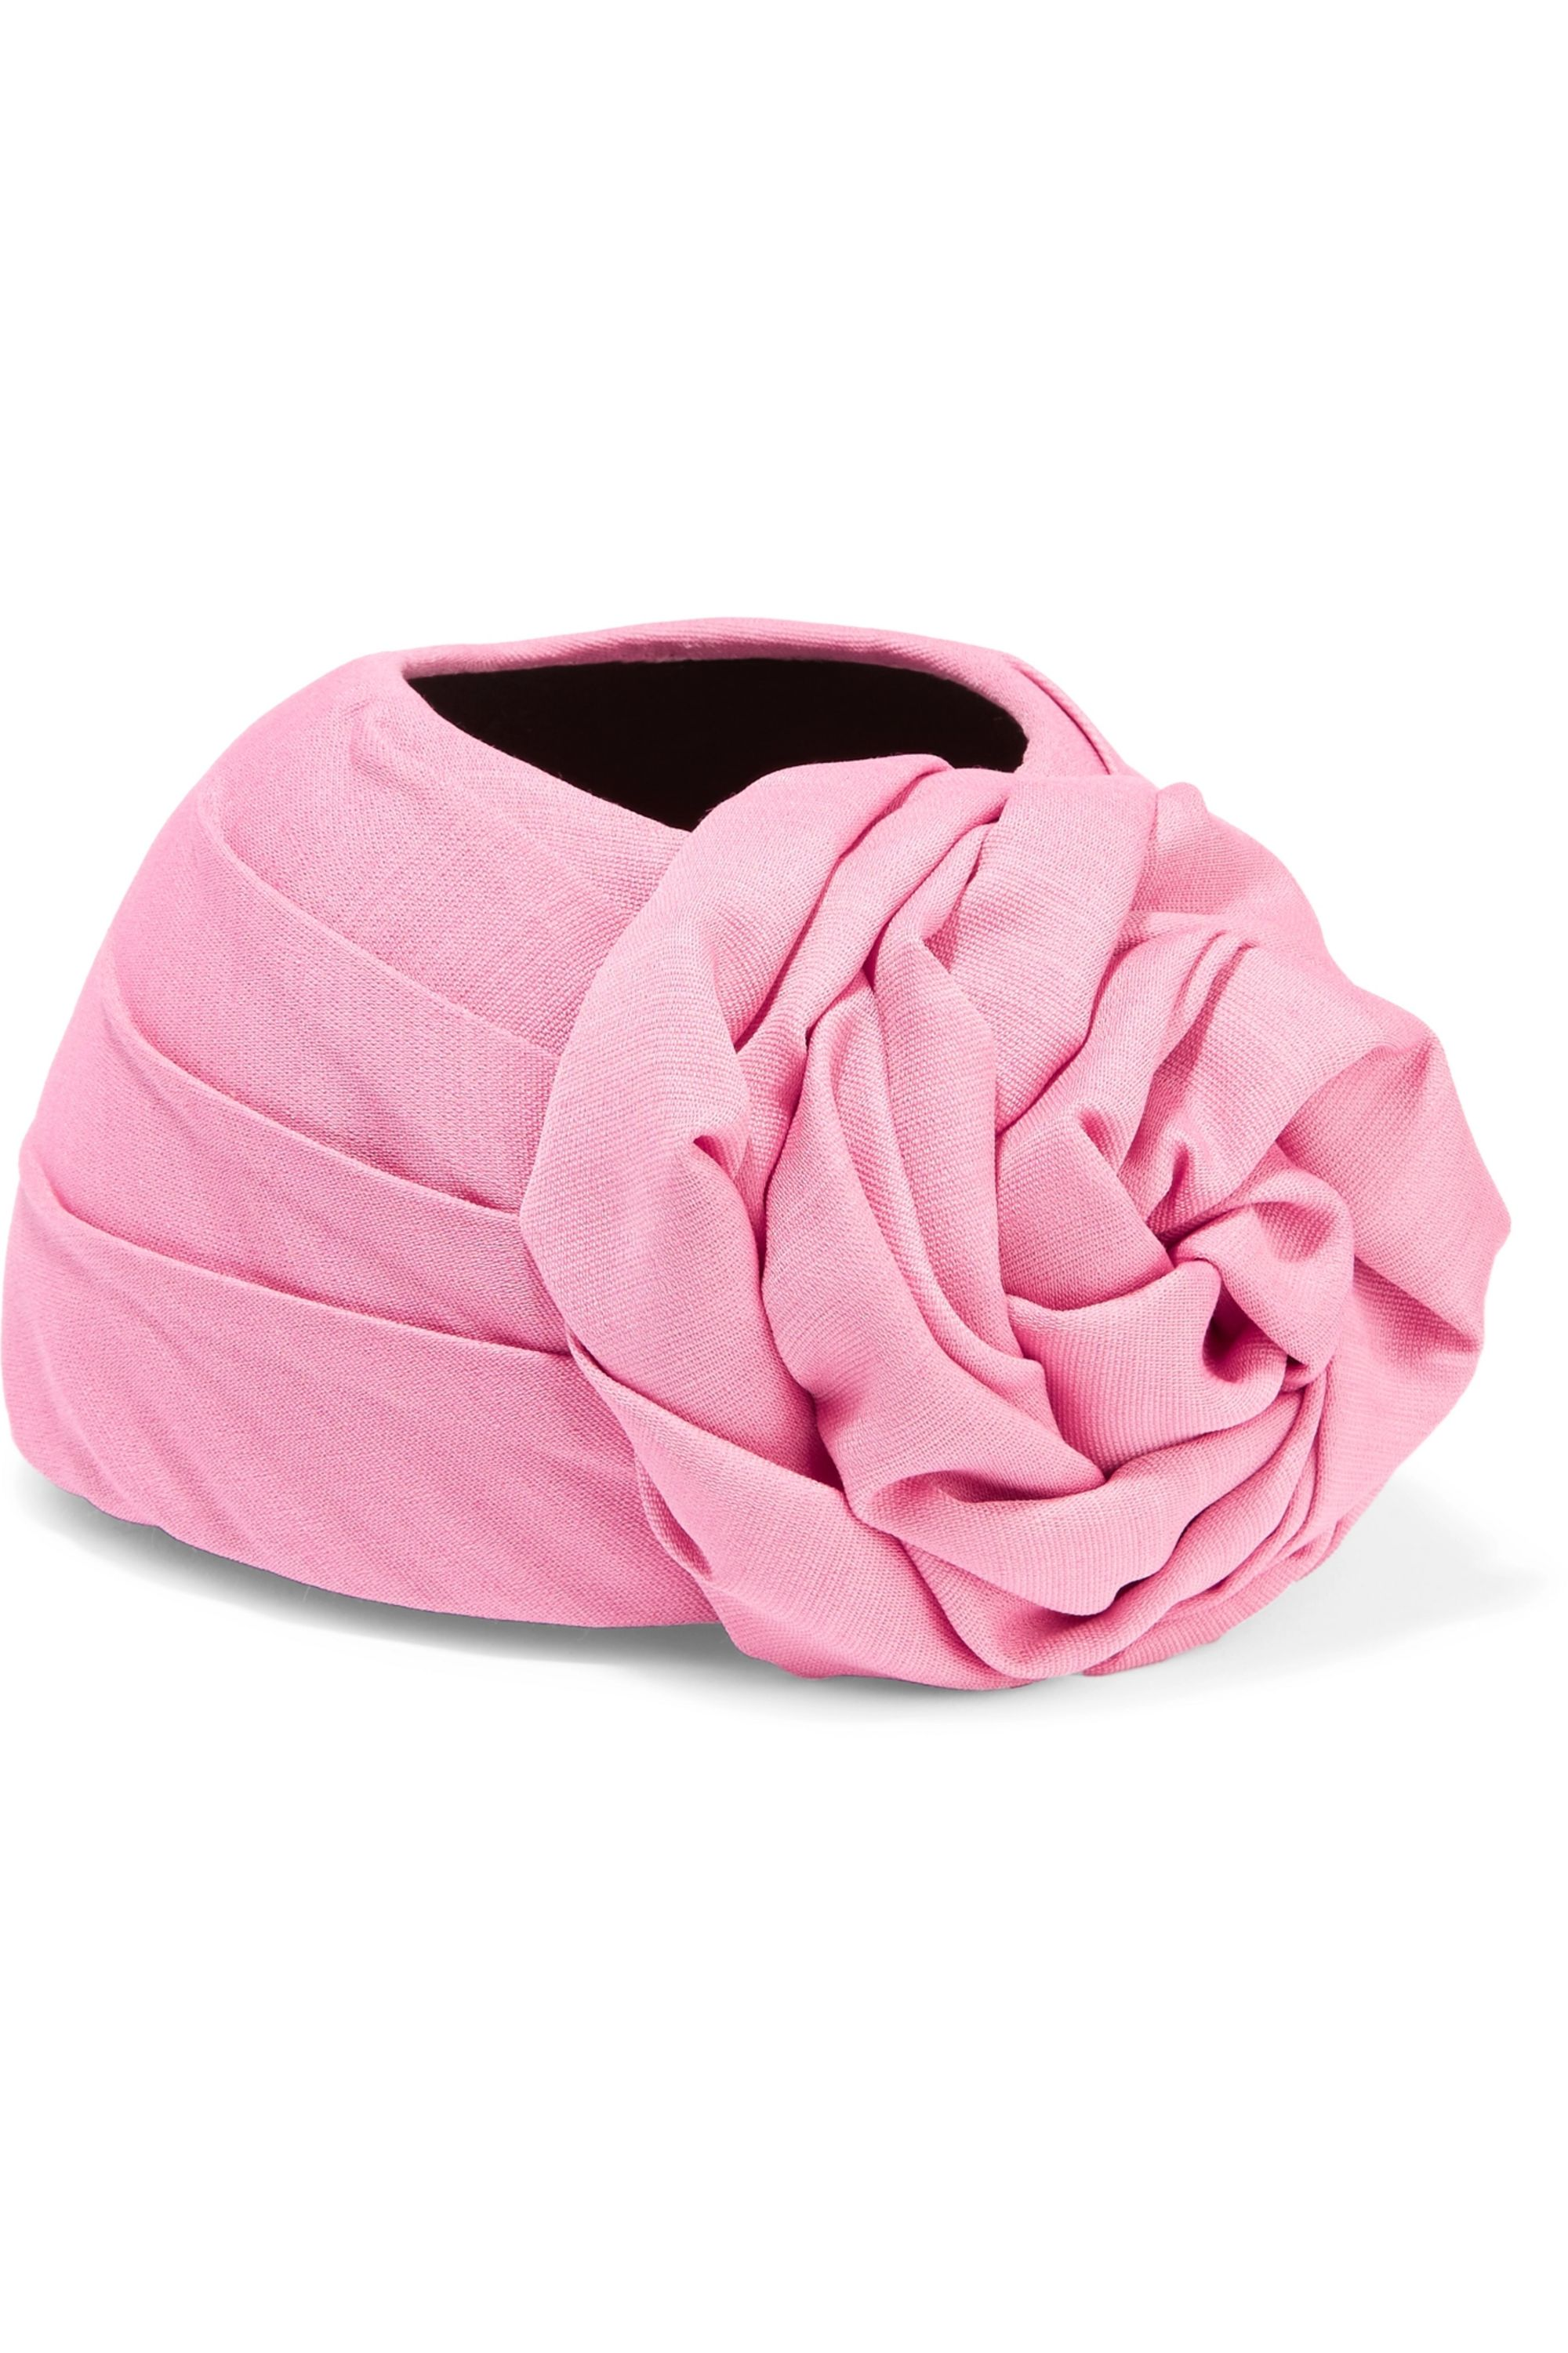 Gucci Knotted silk and wool-blend turban